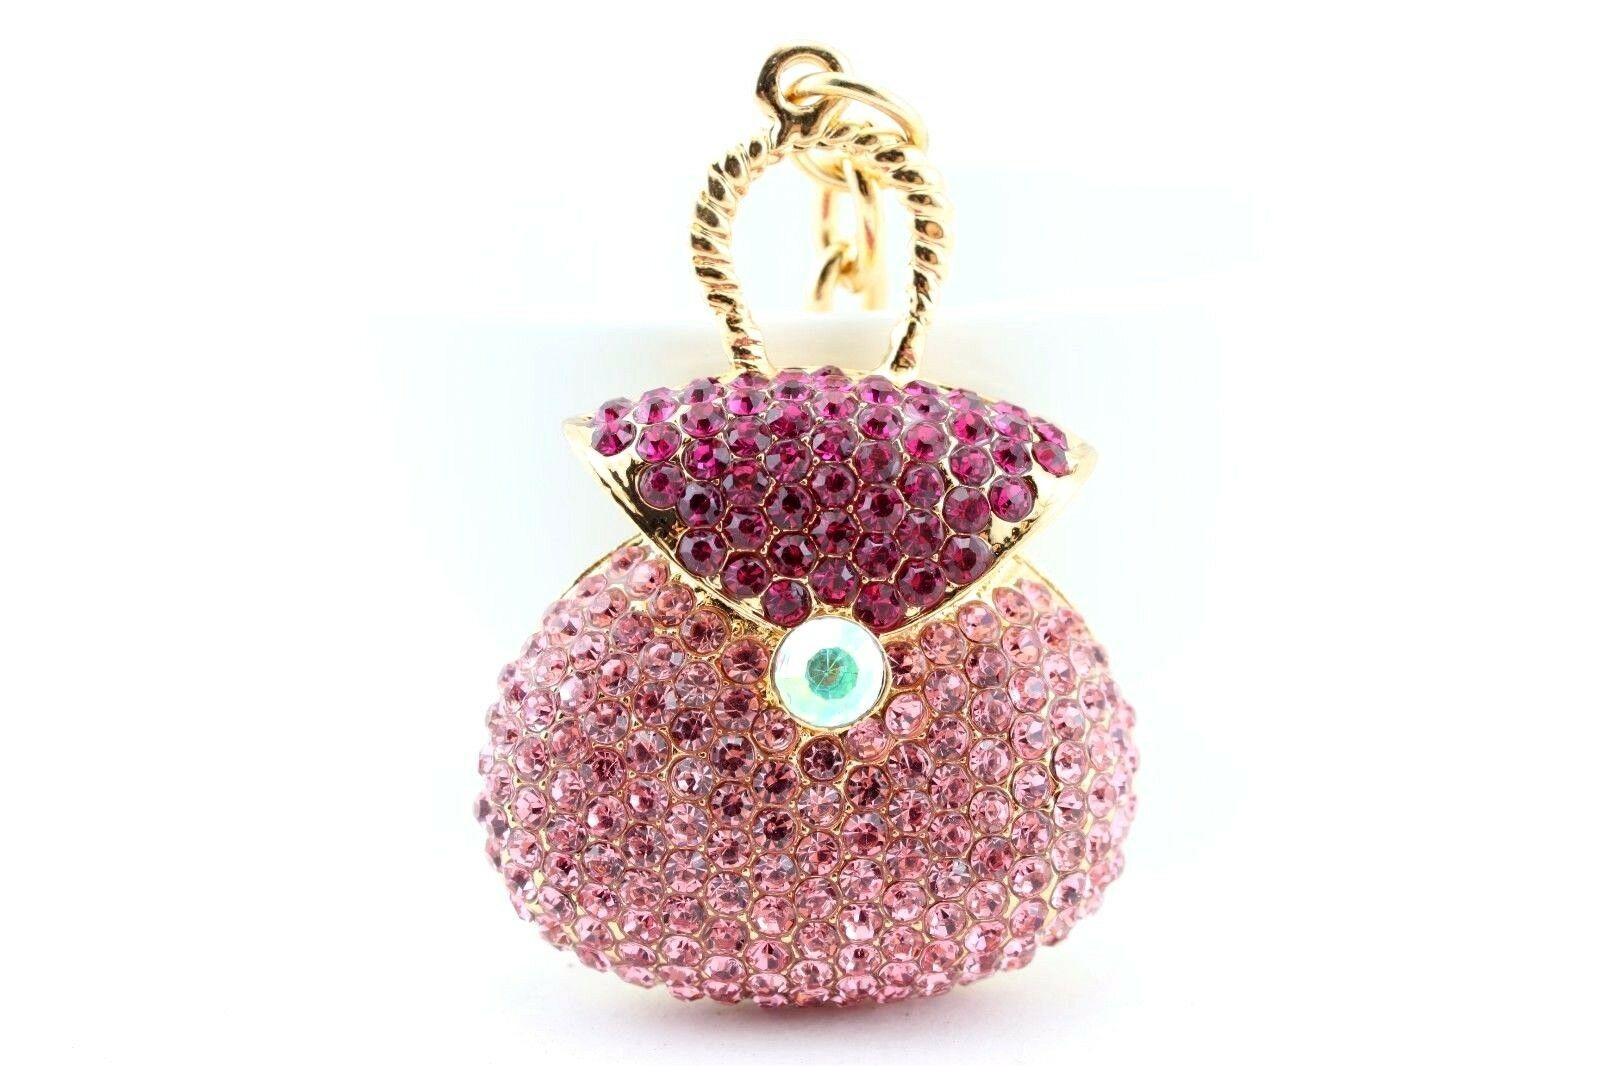 Primary image for Pink Purse Bag Fashion Keychain Crystal Charm Gift Cute Pouch Collectible #MCK11